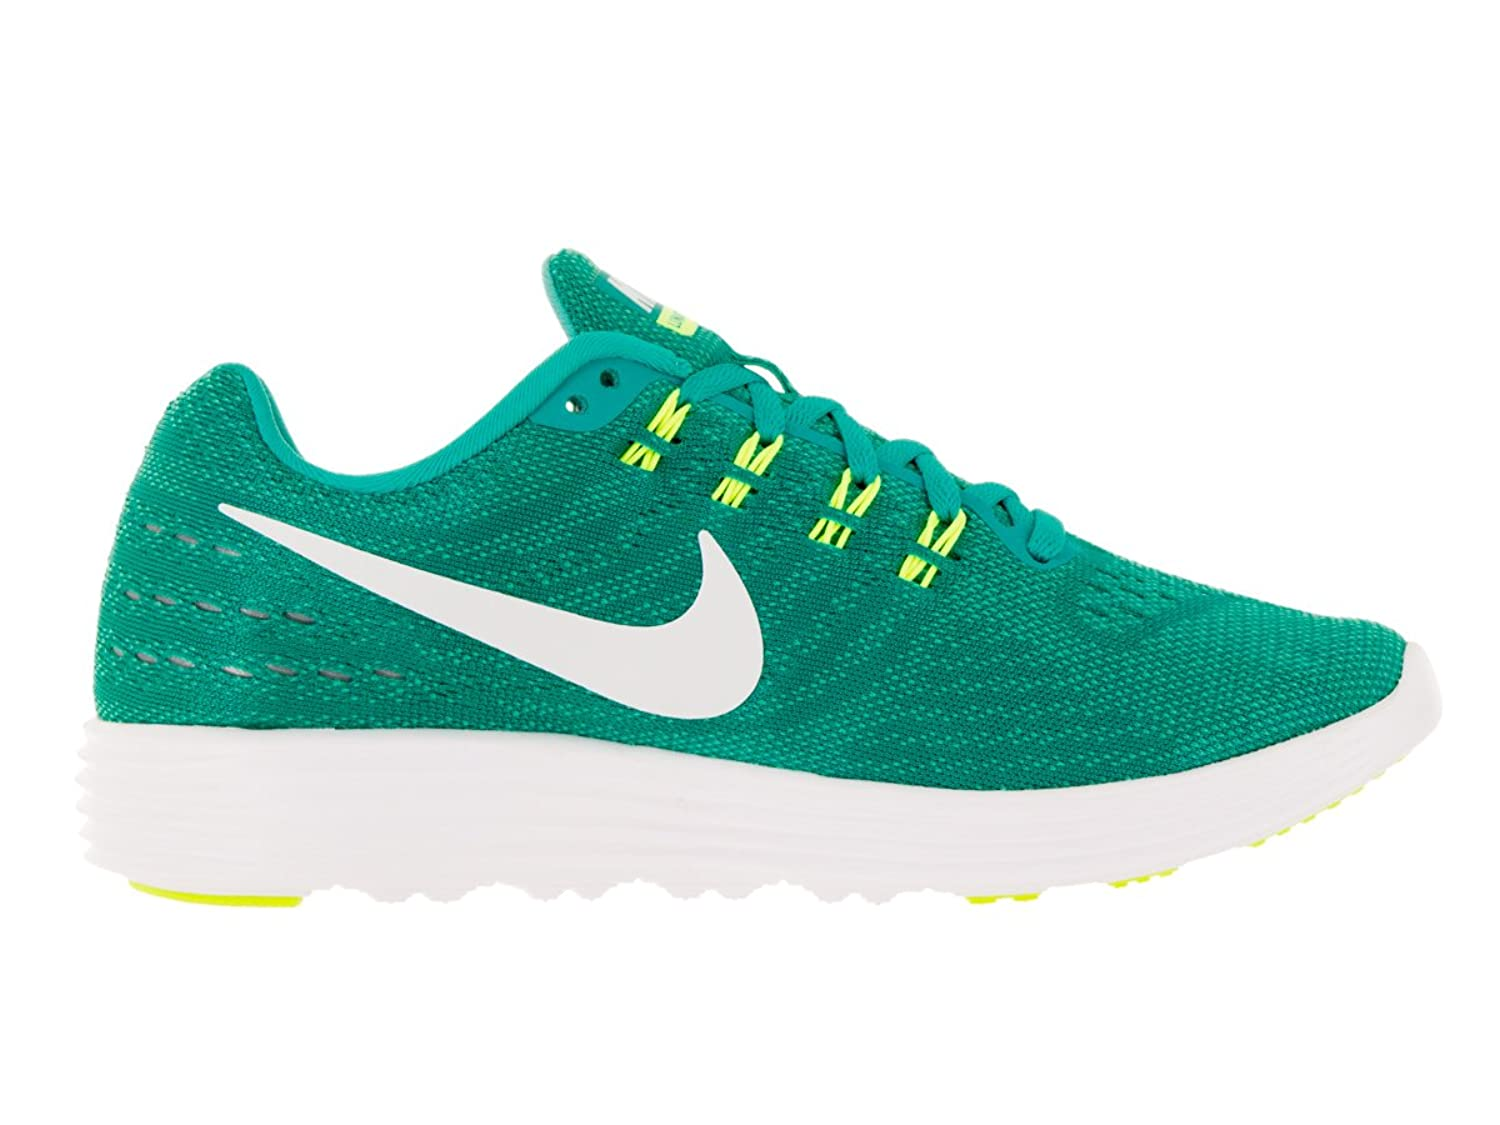 Amazon.com | NIKE Womens Lunartempo 2 Clear Jade/White Hypr Jade VLT Running Shoe 10 Women US | Road Running